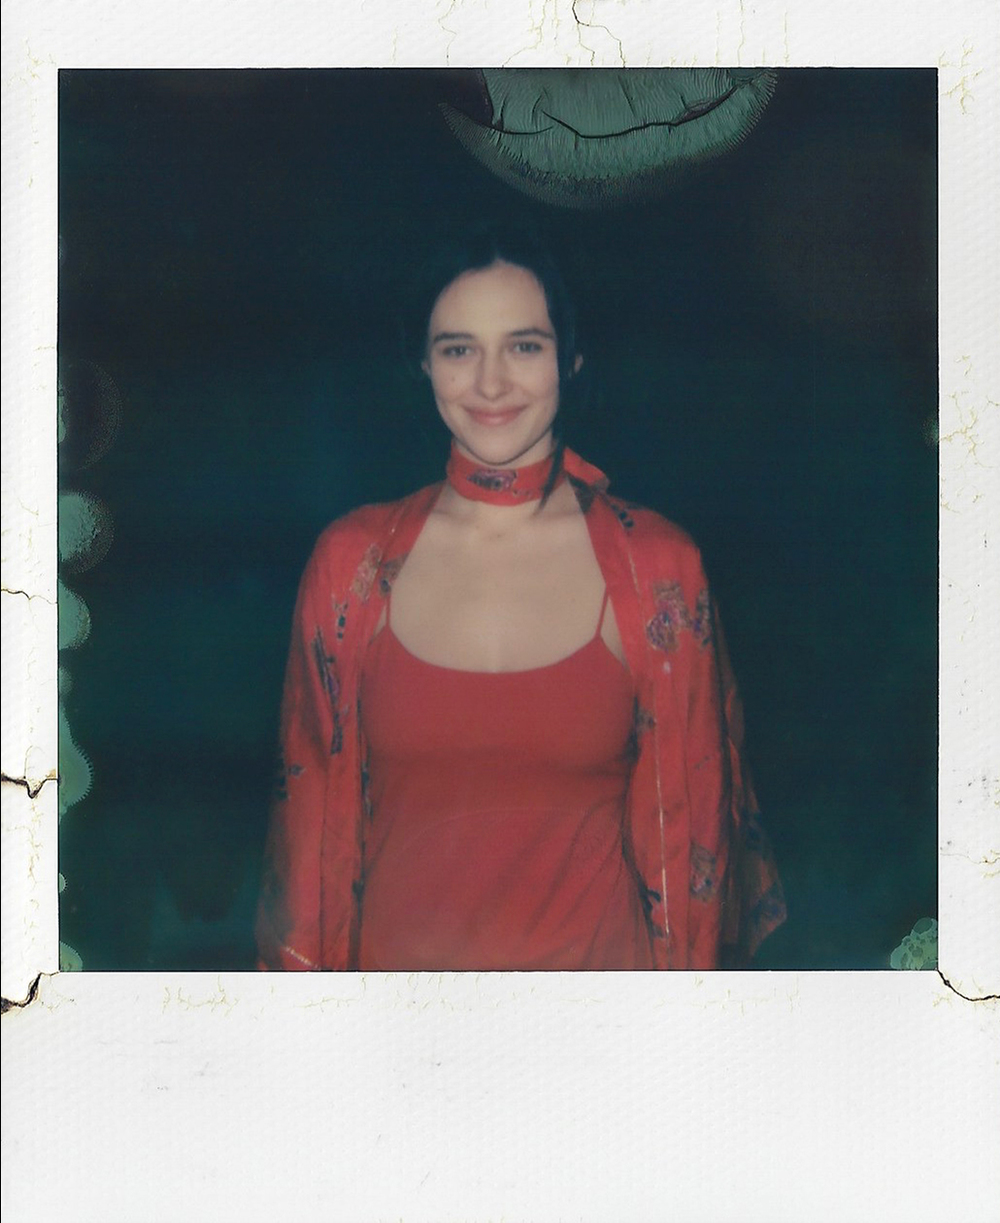 Devon-Color-Polaroid-casenruiz.jpg